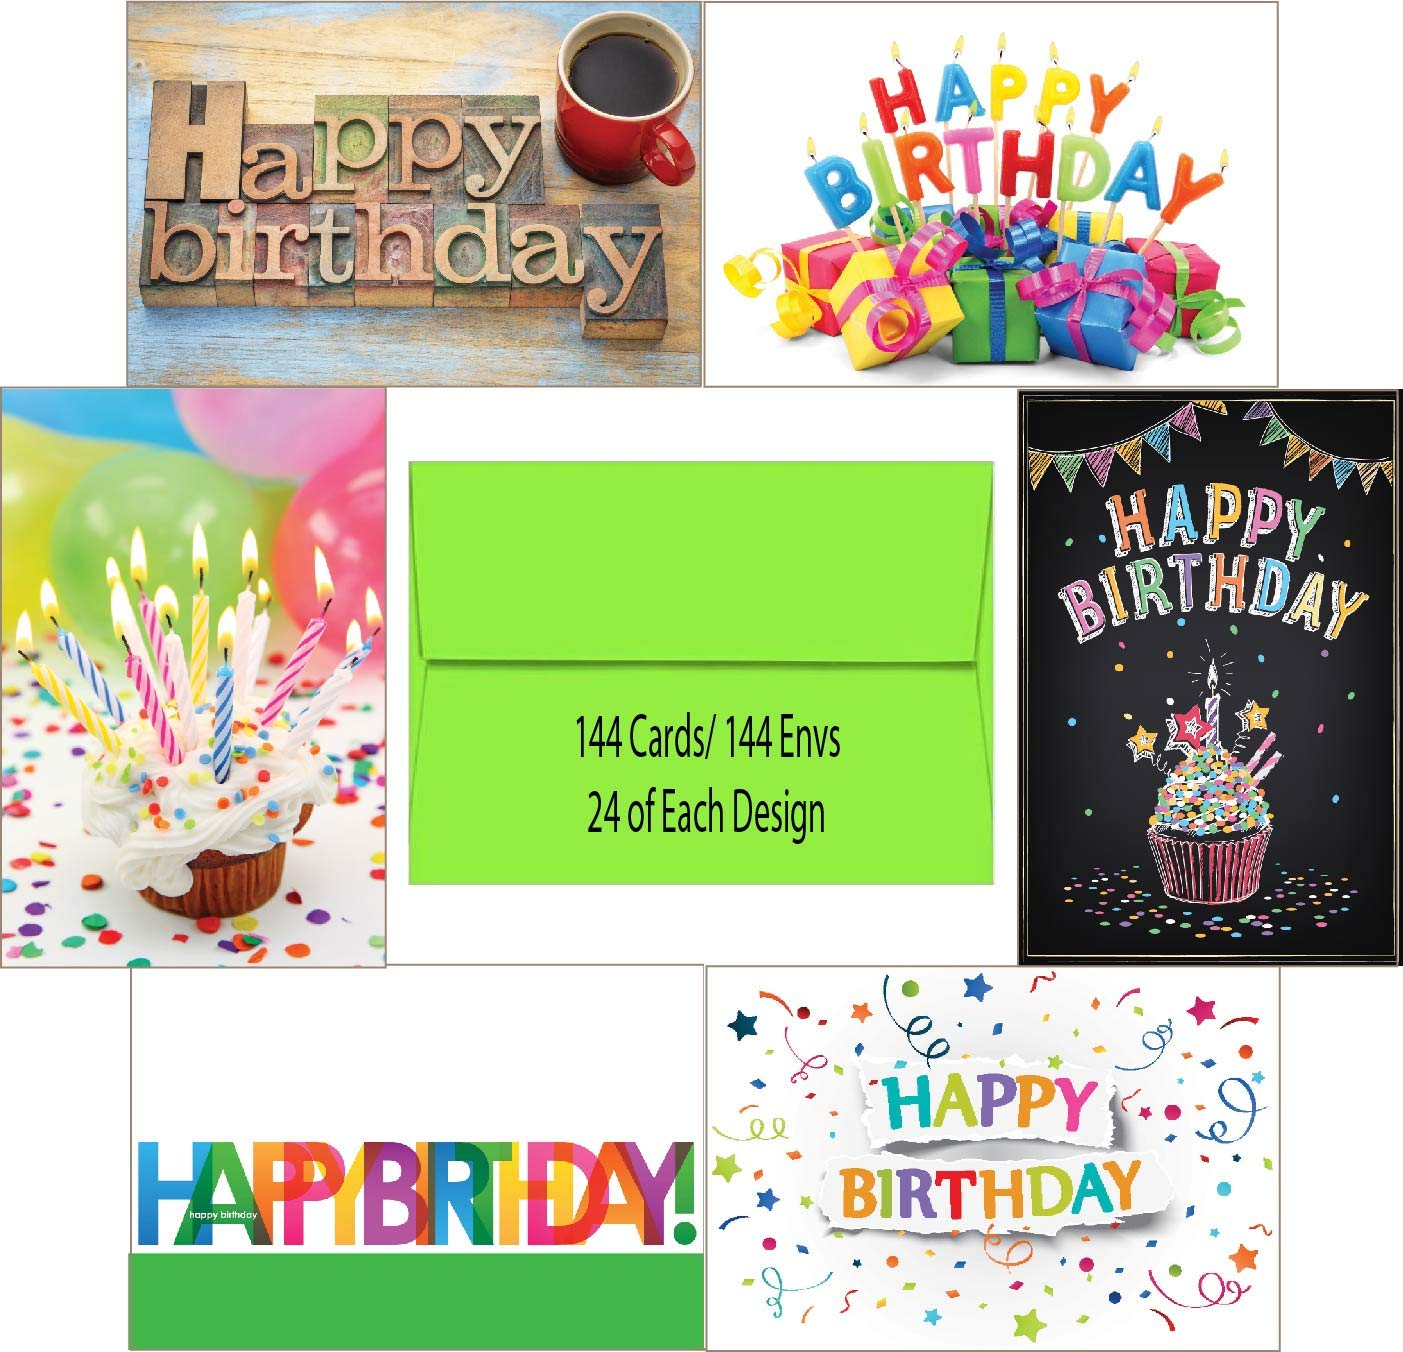 144 Blank Birthday Card Assortment Box Set Bulk With A4 Envelopes And Cards 24 Each Design